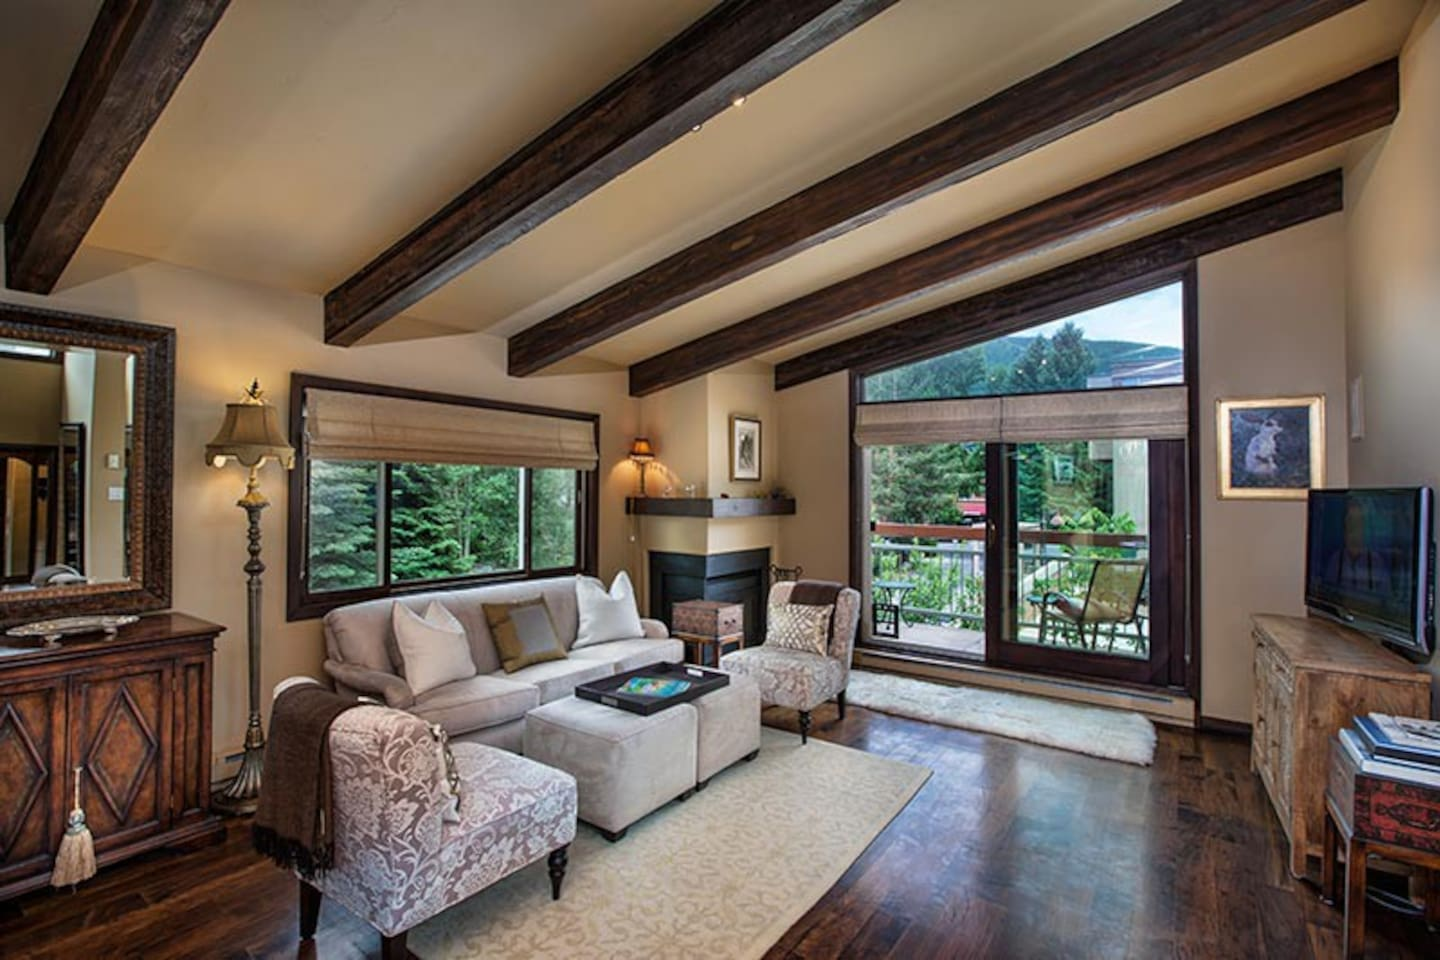 Living room with vaulted ceilings. Lots of natural light